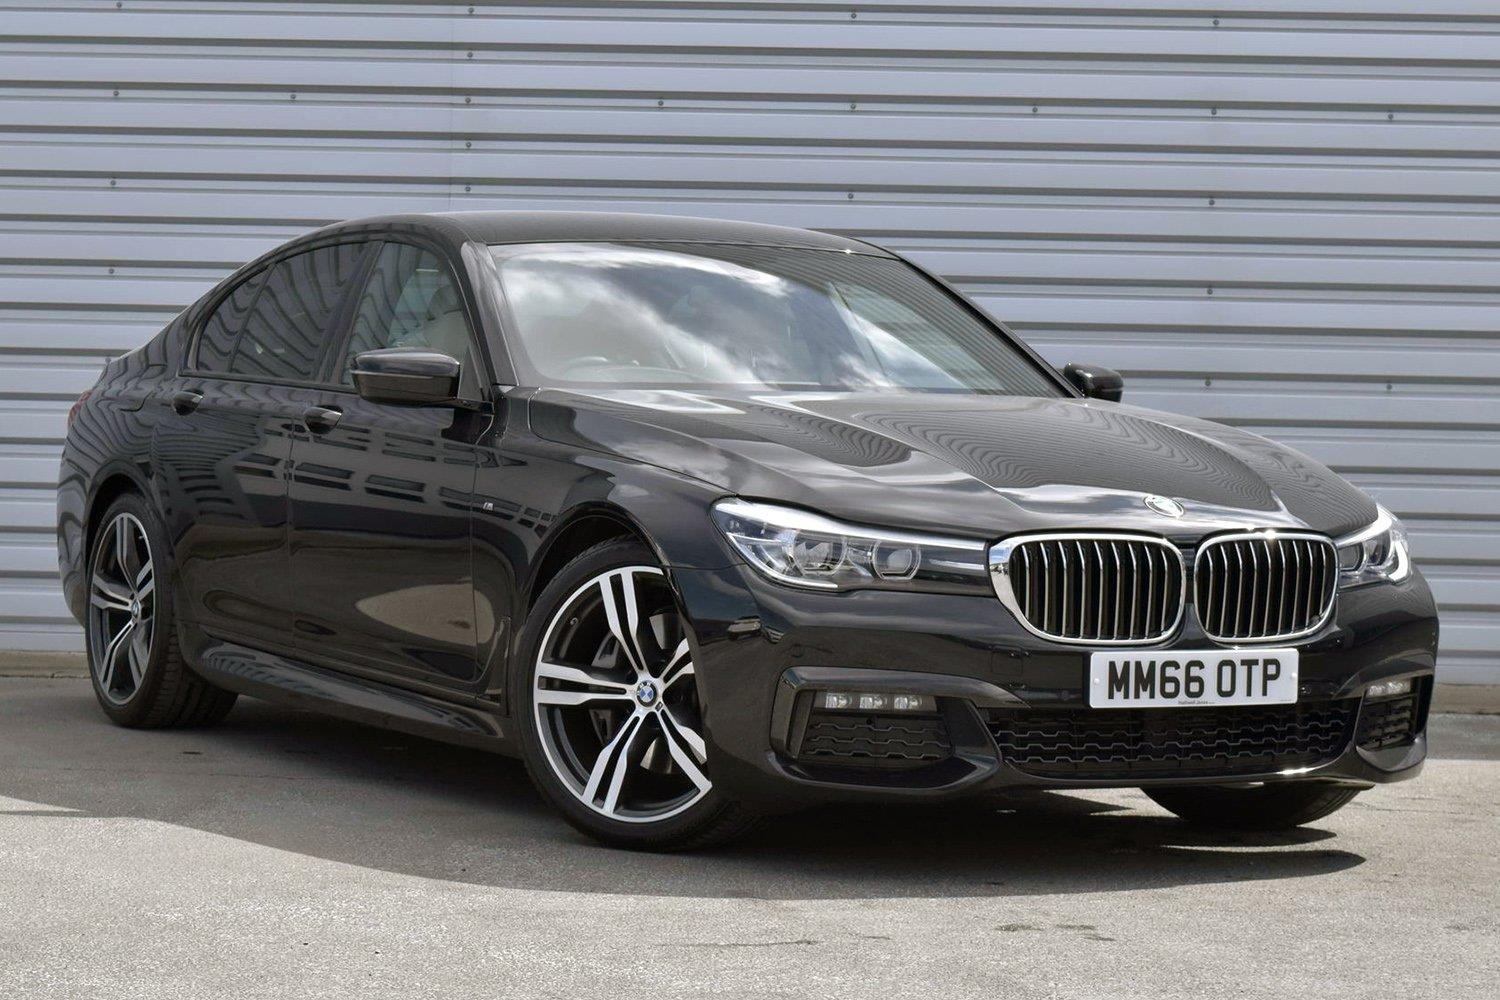 BMW 7 Series Saloon MM66OTP - Image 5